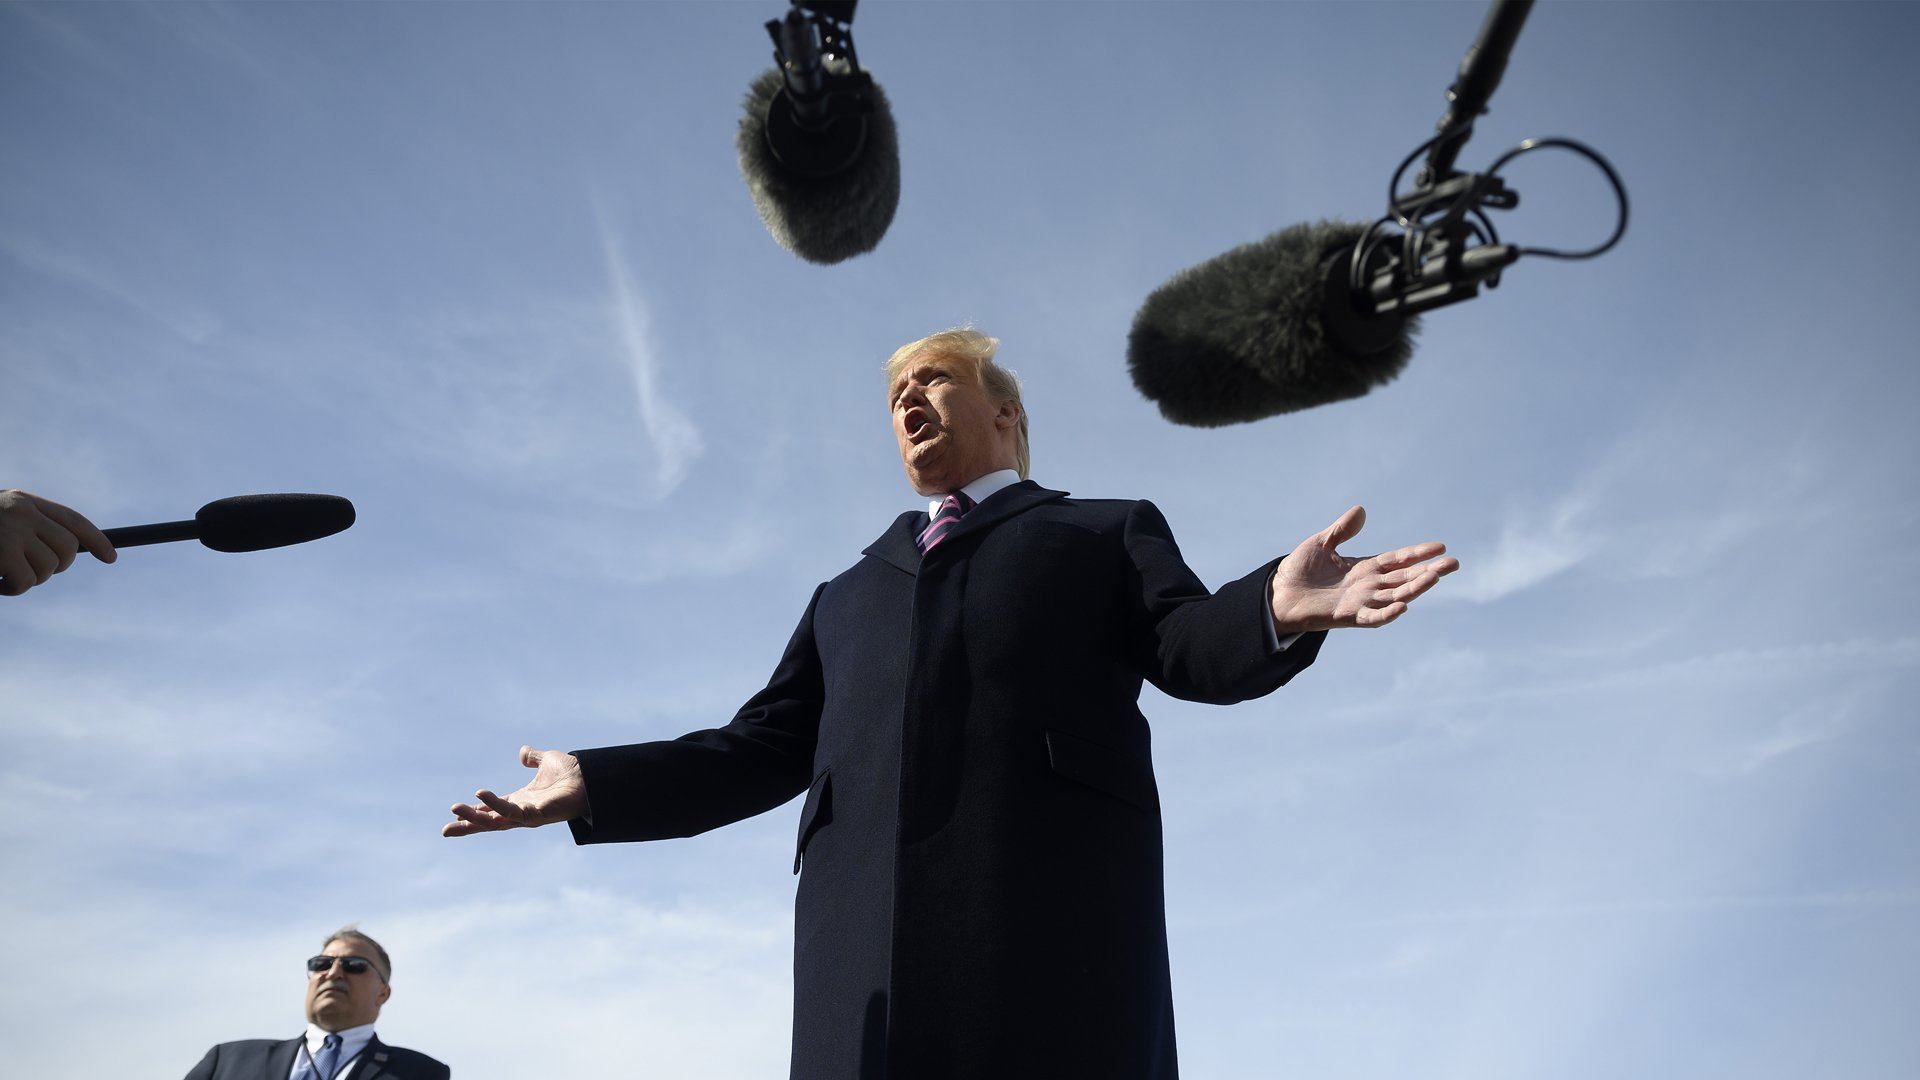 President Donald Trump speaks to the press before boarding Air Force One at Join Base Andrews in Maryland, en route to Los Angeles, on Feb. 18, 2020. (Credit: Jim Watson / AFP / Getty Images)